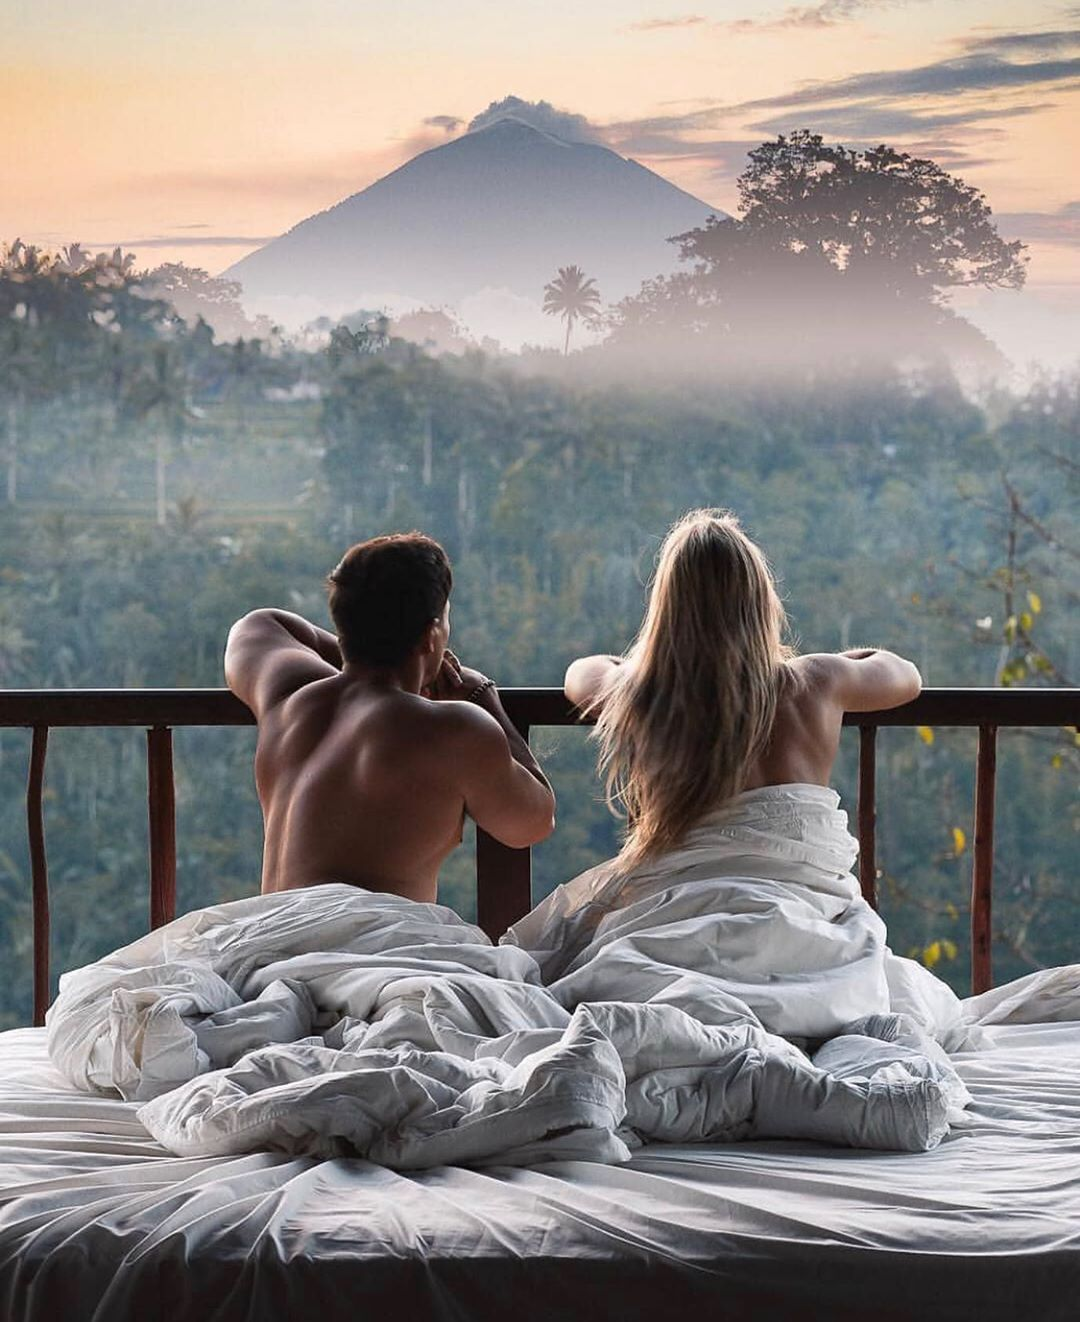 Waking up to incredible views like this ...Mount Agung letting off some steam in the background, jungle and rice paddie views in front,…